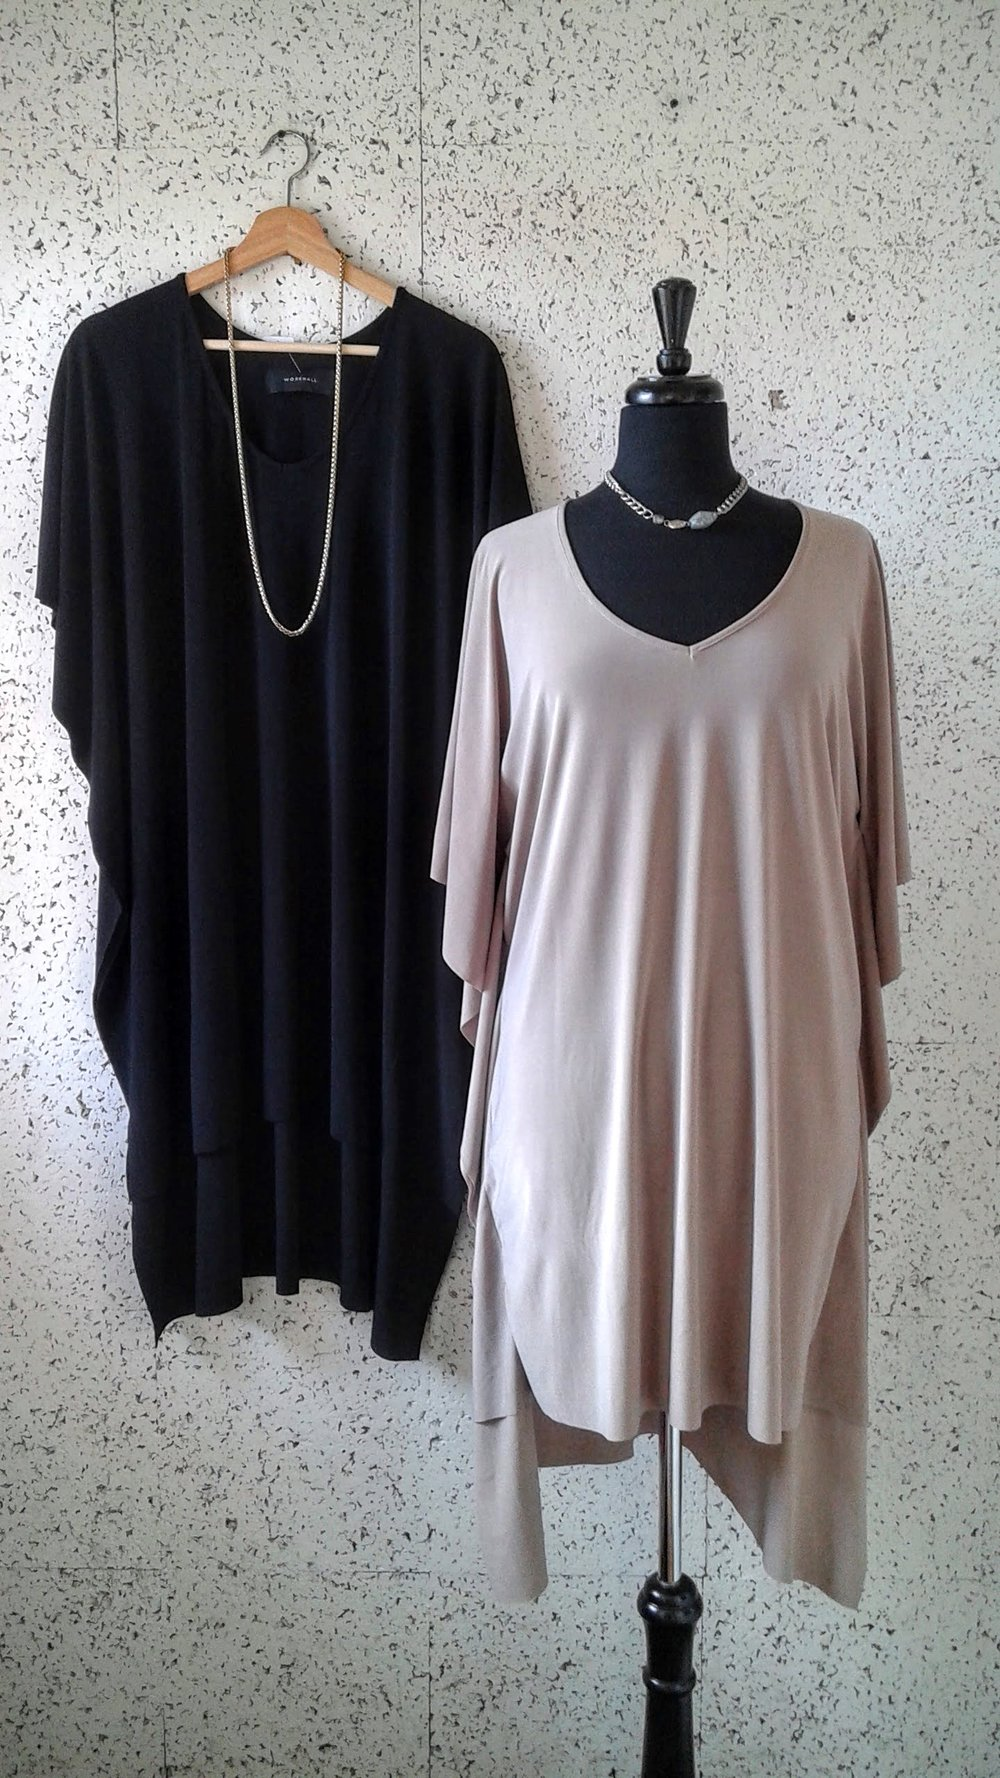 Workhall dresses; Size M, $52 each